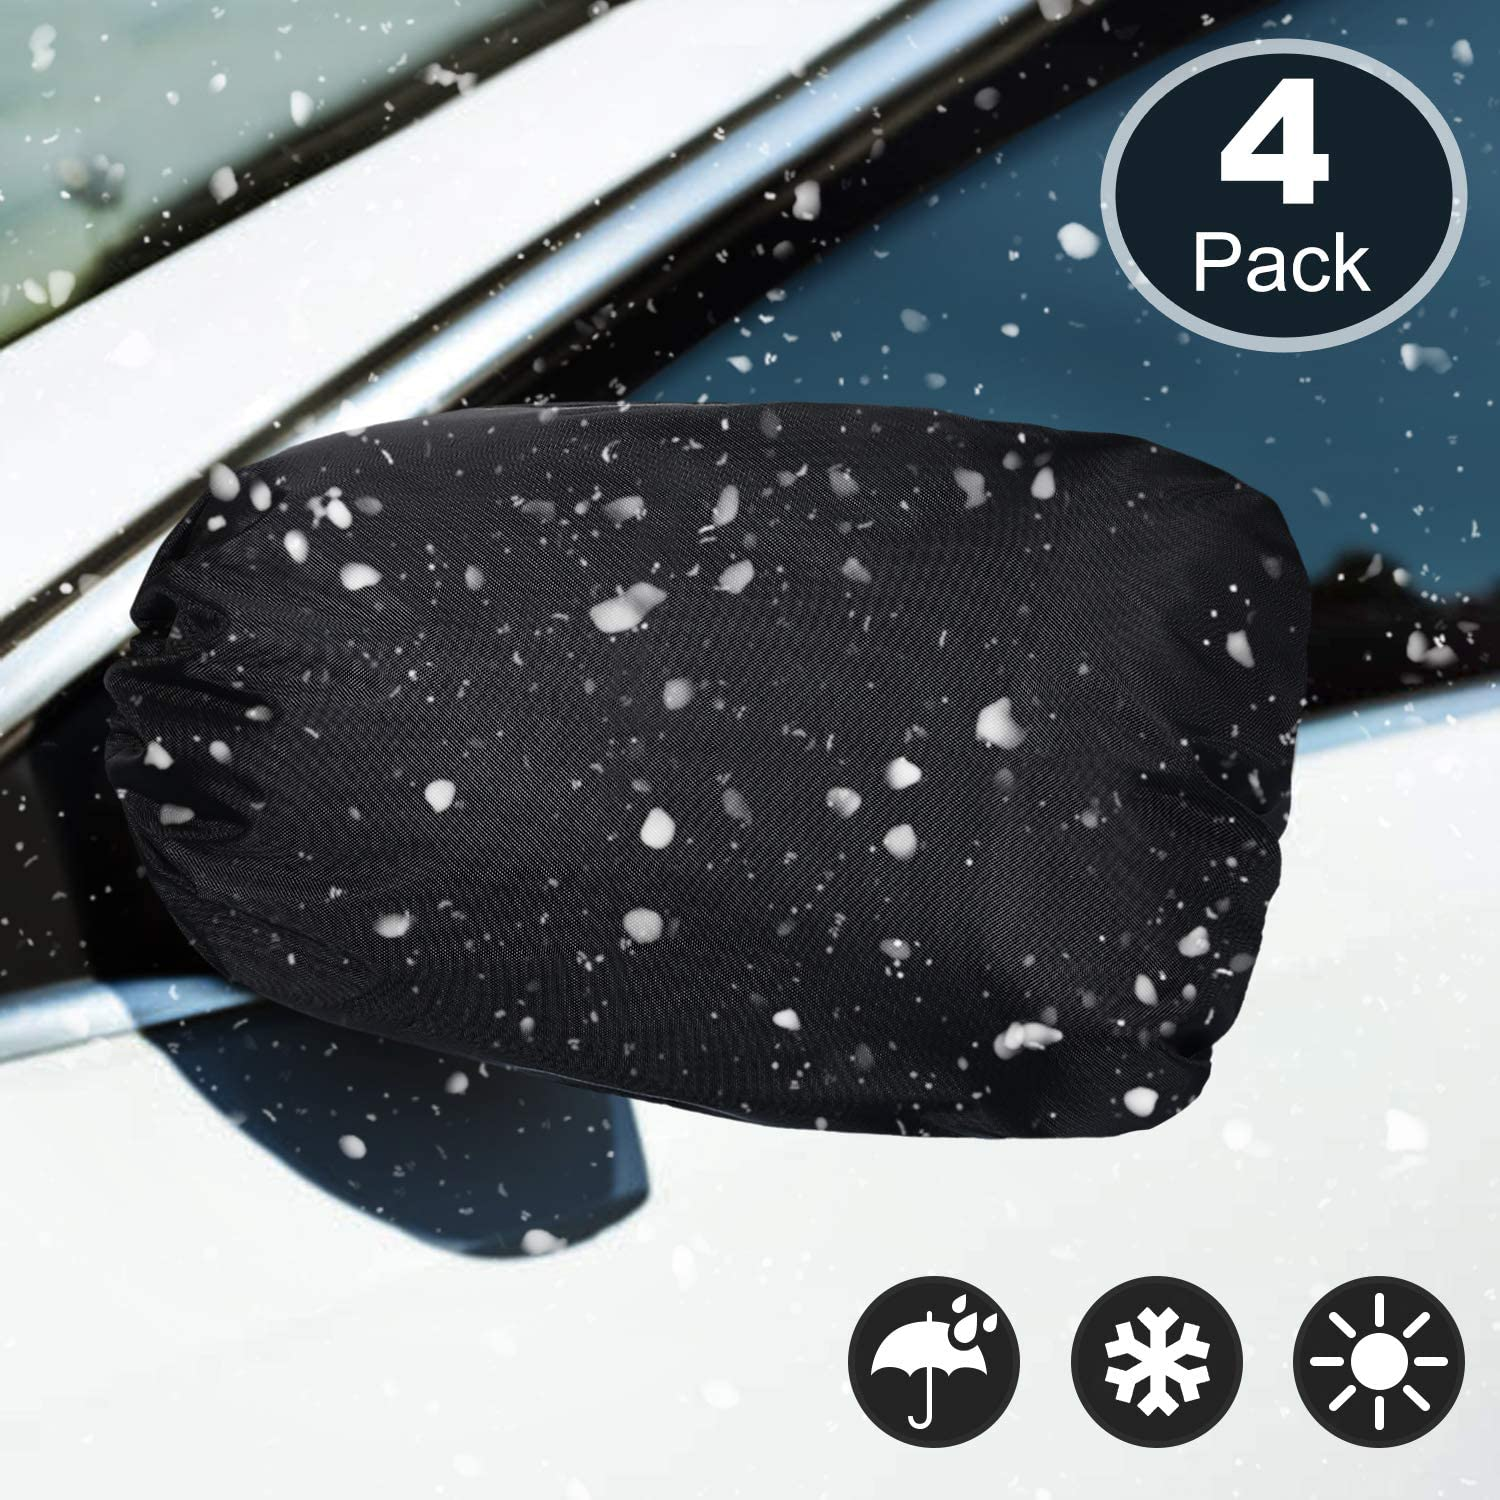 Side View Mirror Cover Frost Guard Mirror Cover Auto Rearview Protection Cover Snow Ice Mirror Covers Exterior Rear View Accessories Universal Size for Cars 1 Piece Black